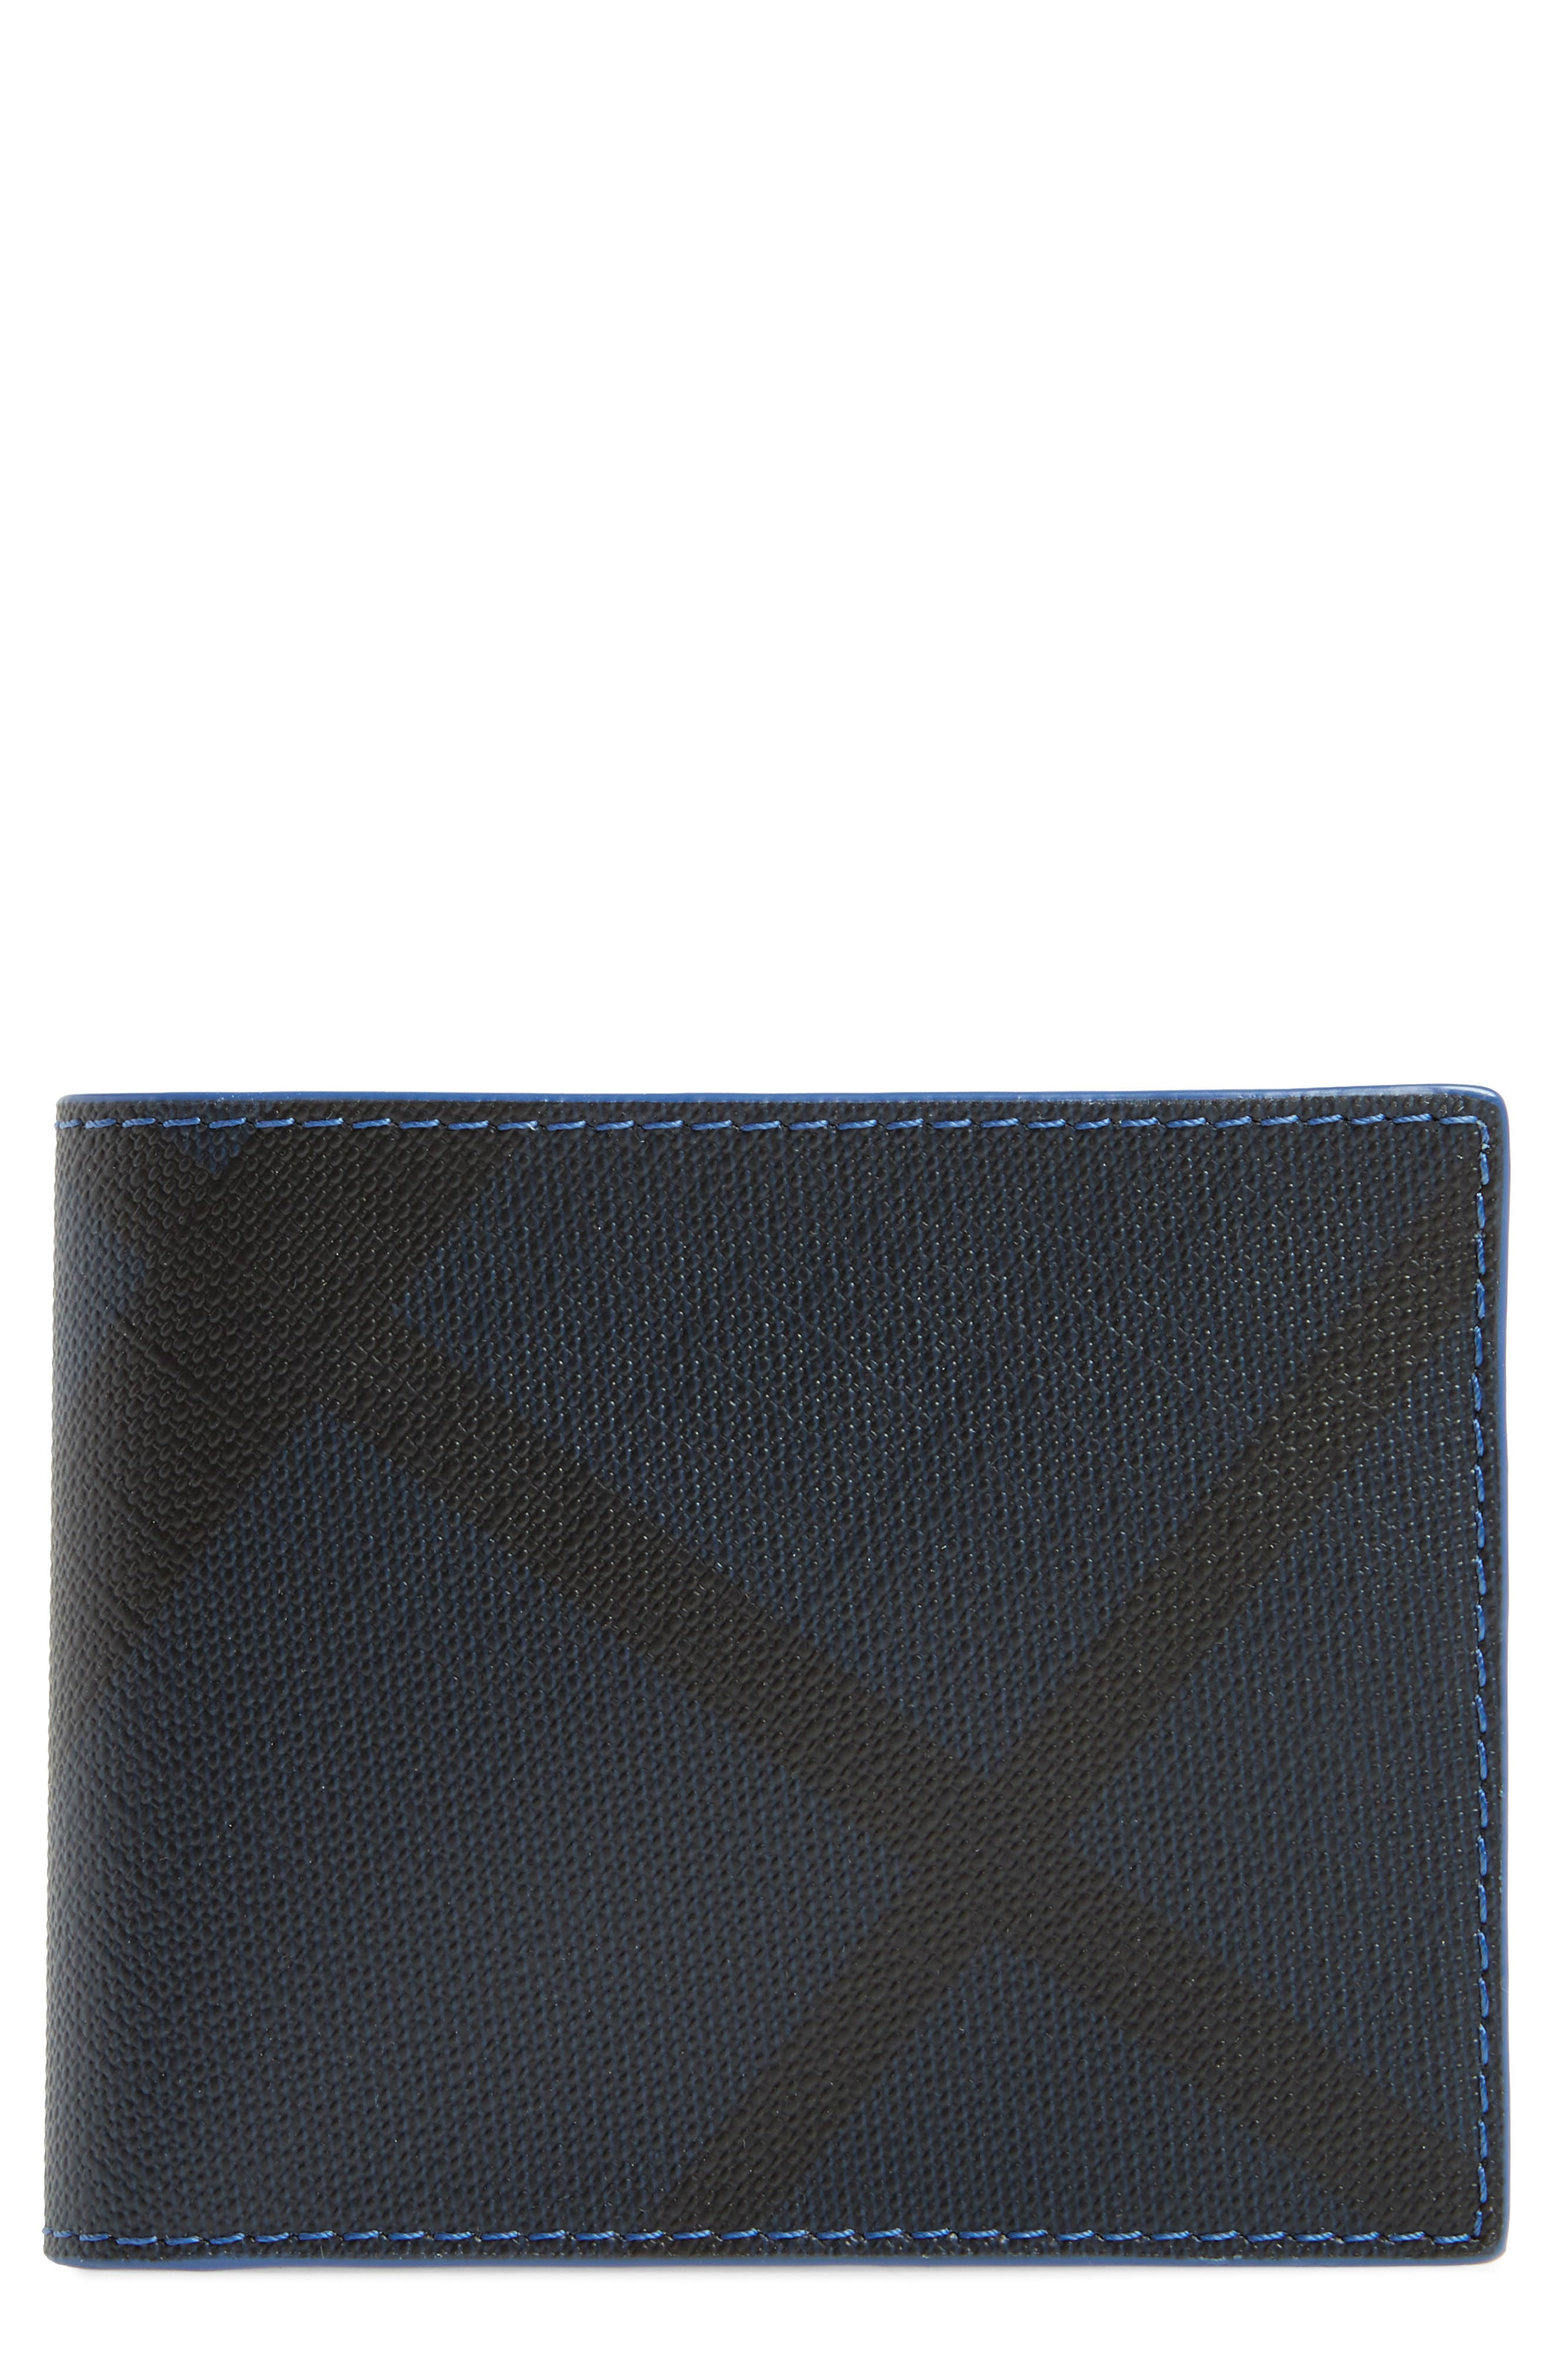 Burberry Check Faux Leather Wallet